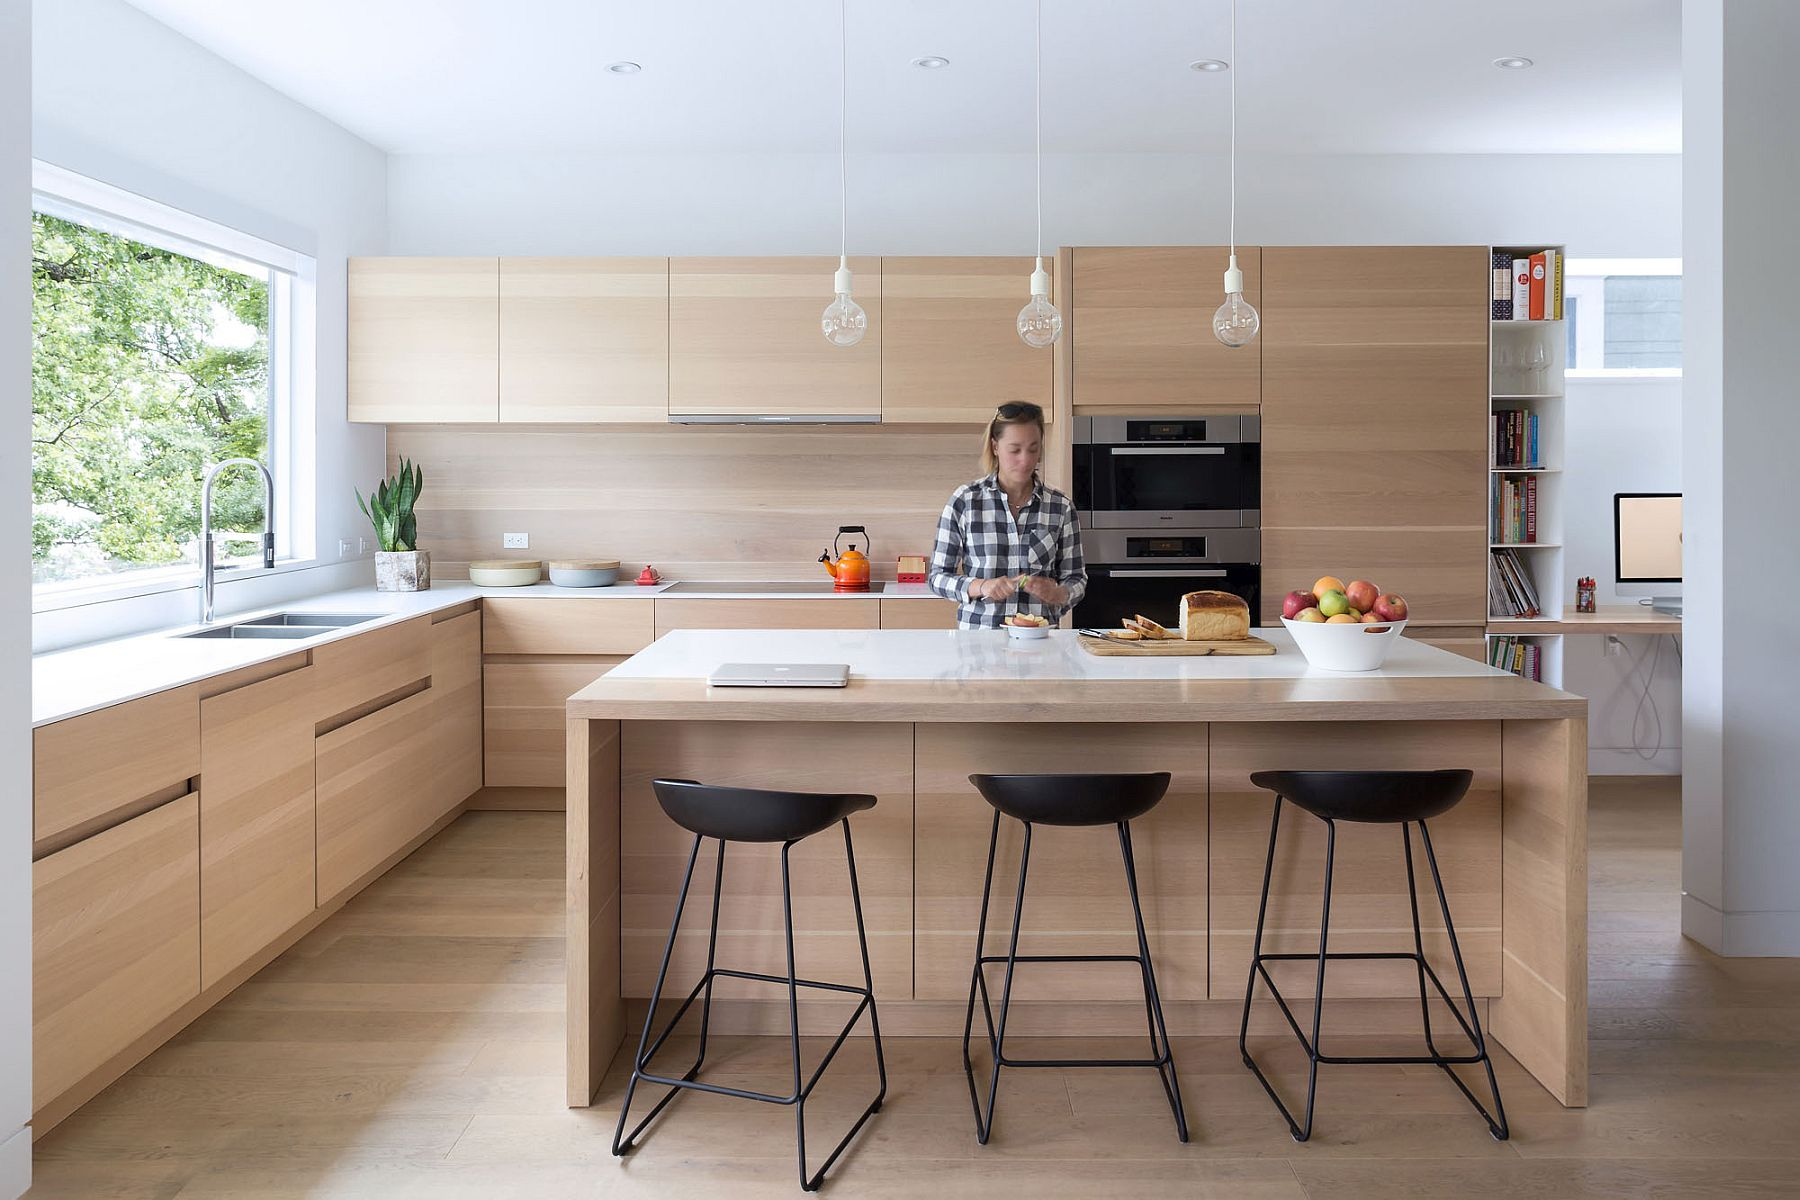 Wooden cabinets, island and backsplash for the breezy modern kitchen